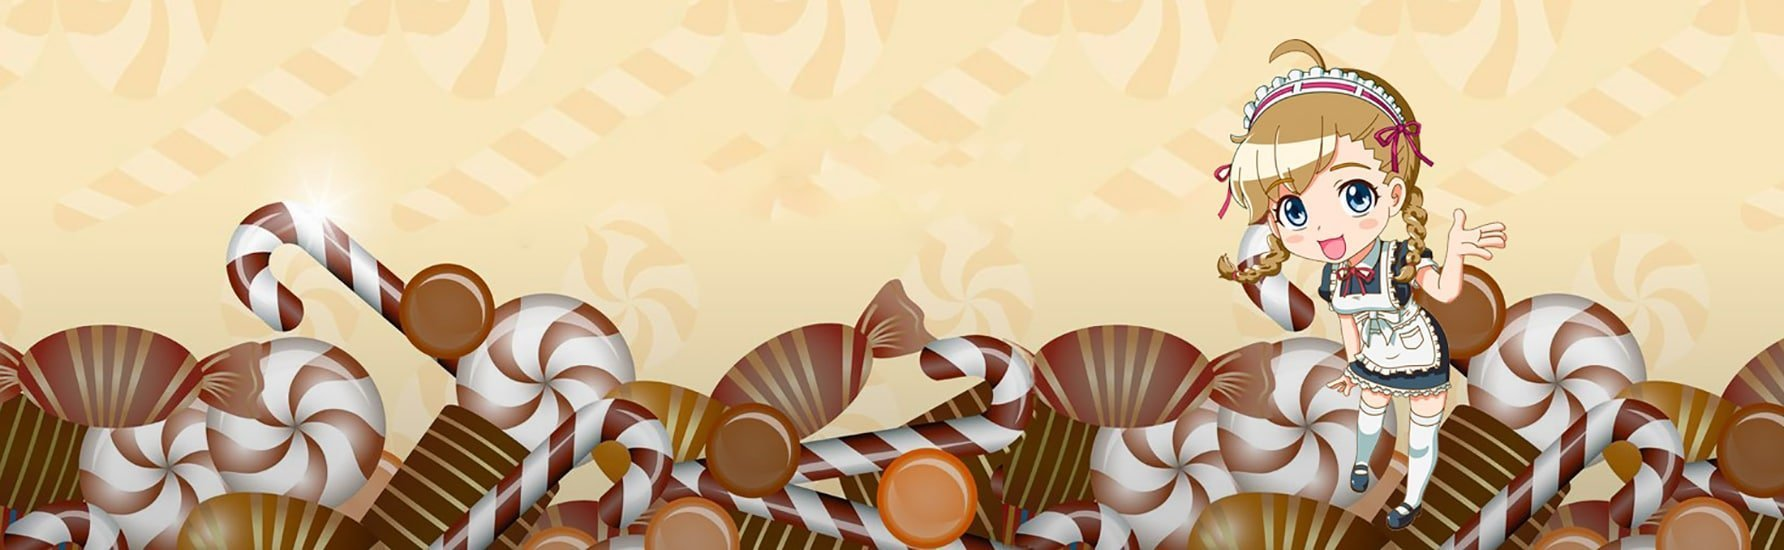 Cahroon Sweet Streams Online Shop of Japanese Snacks and Treats